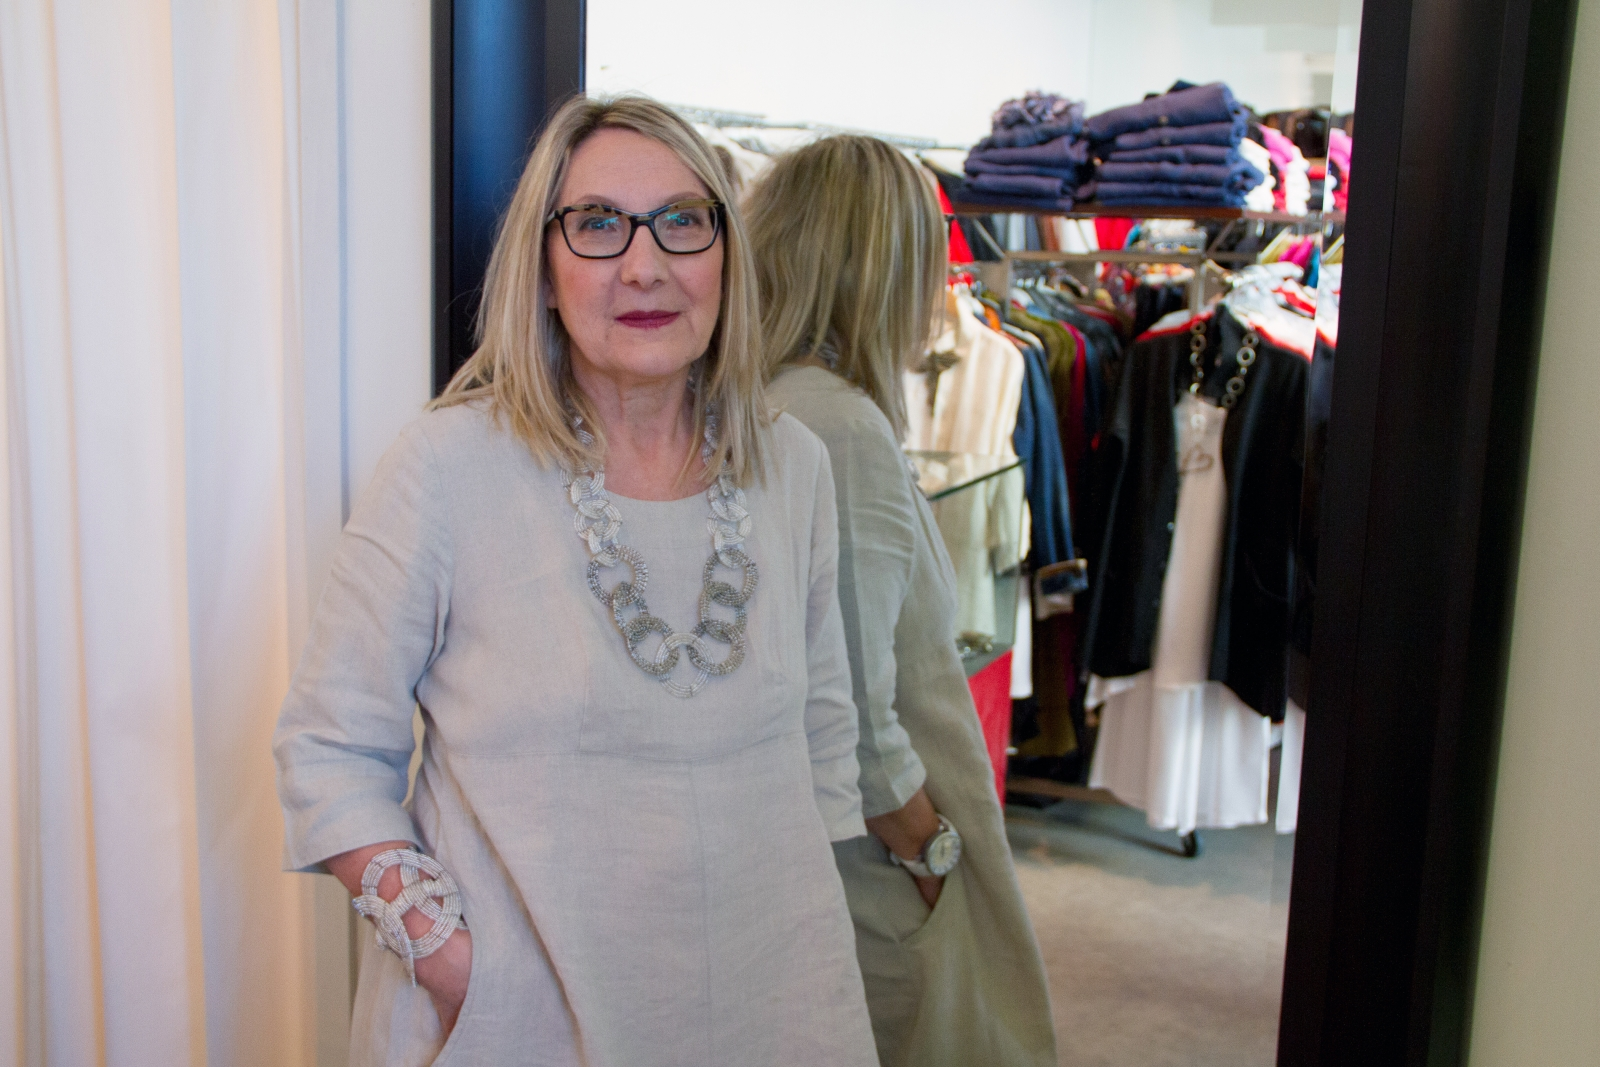 Nikola owner Sonja McDowell pictured at her Mission boutique.